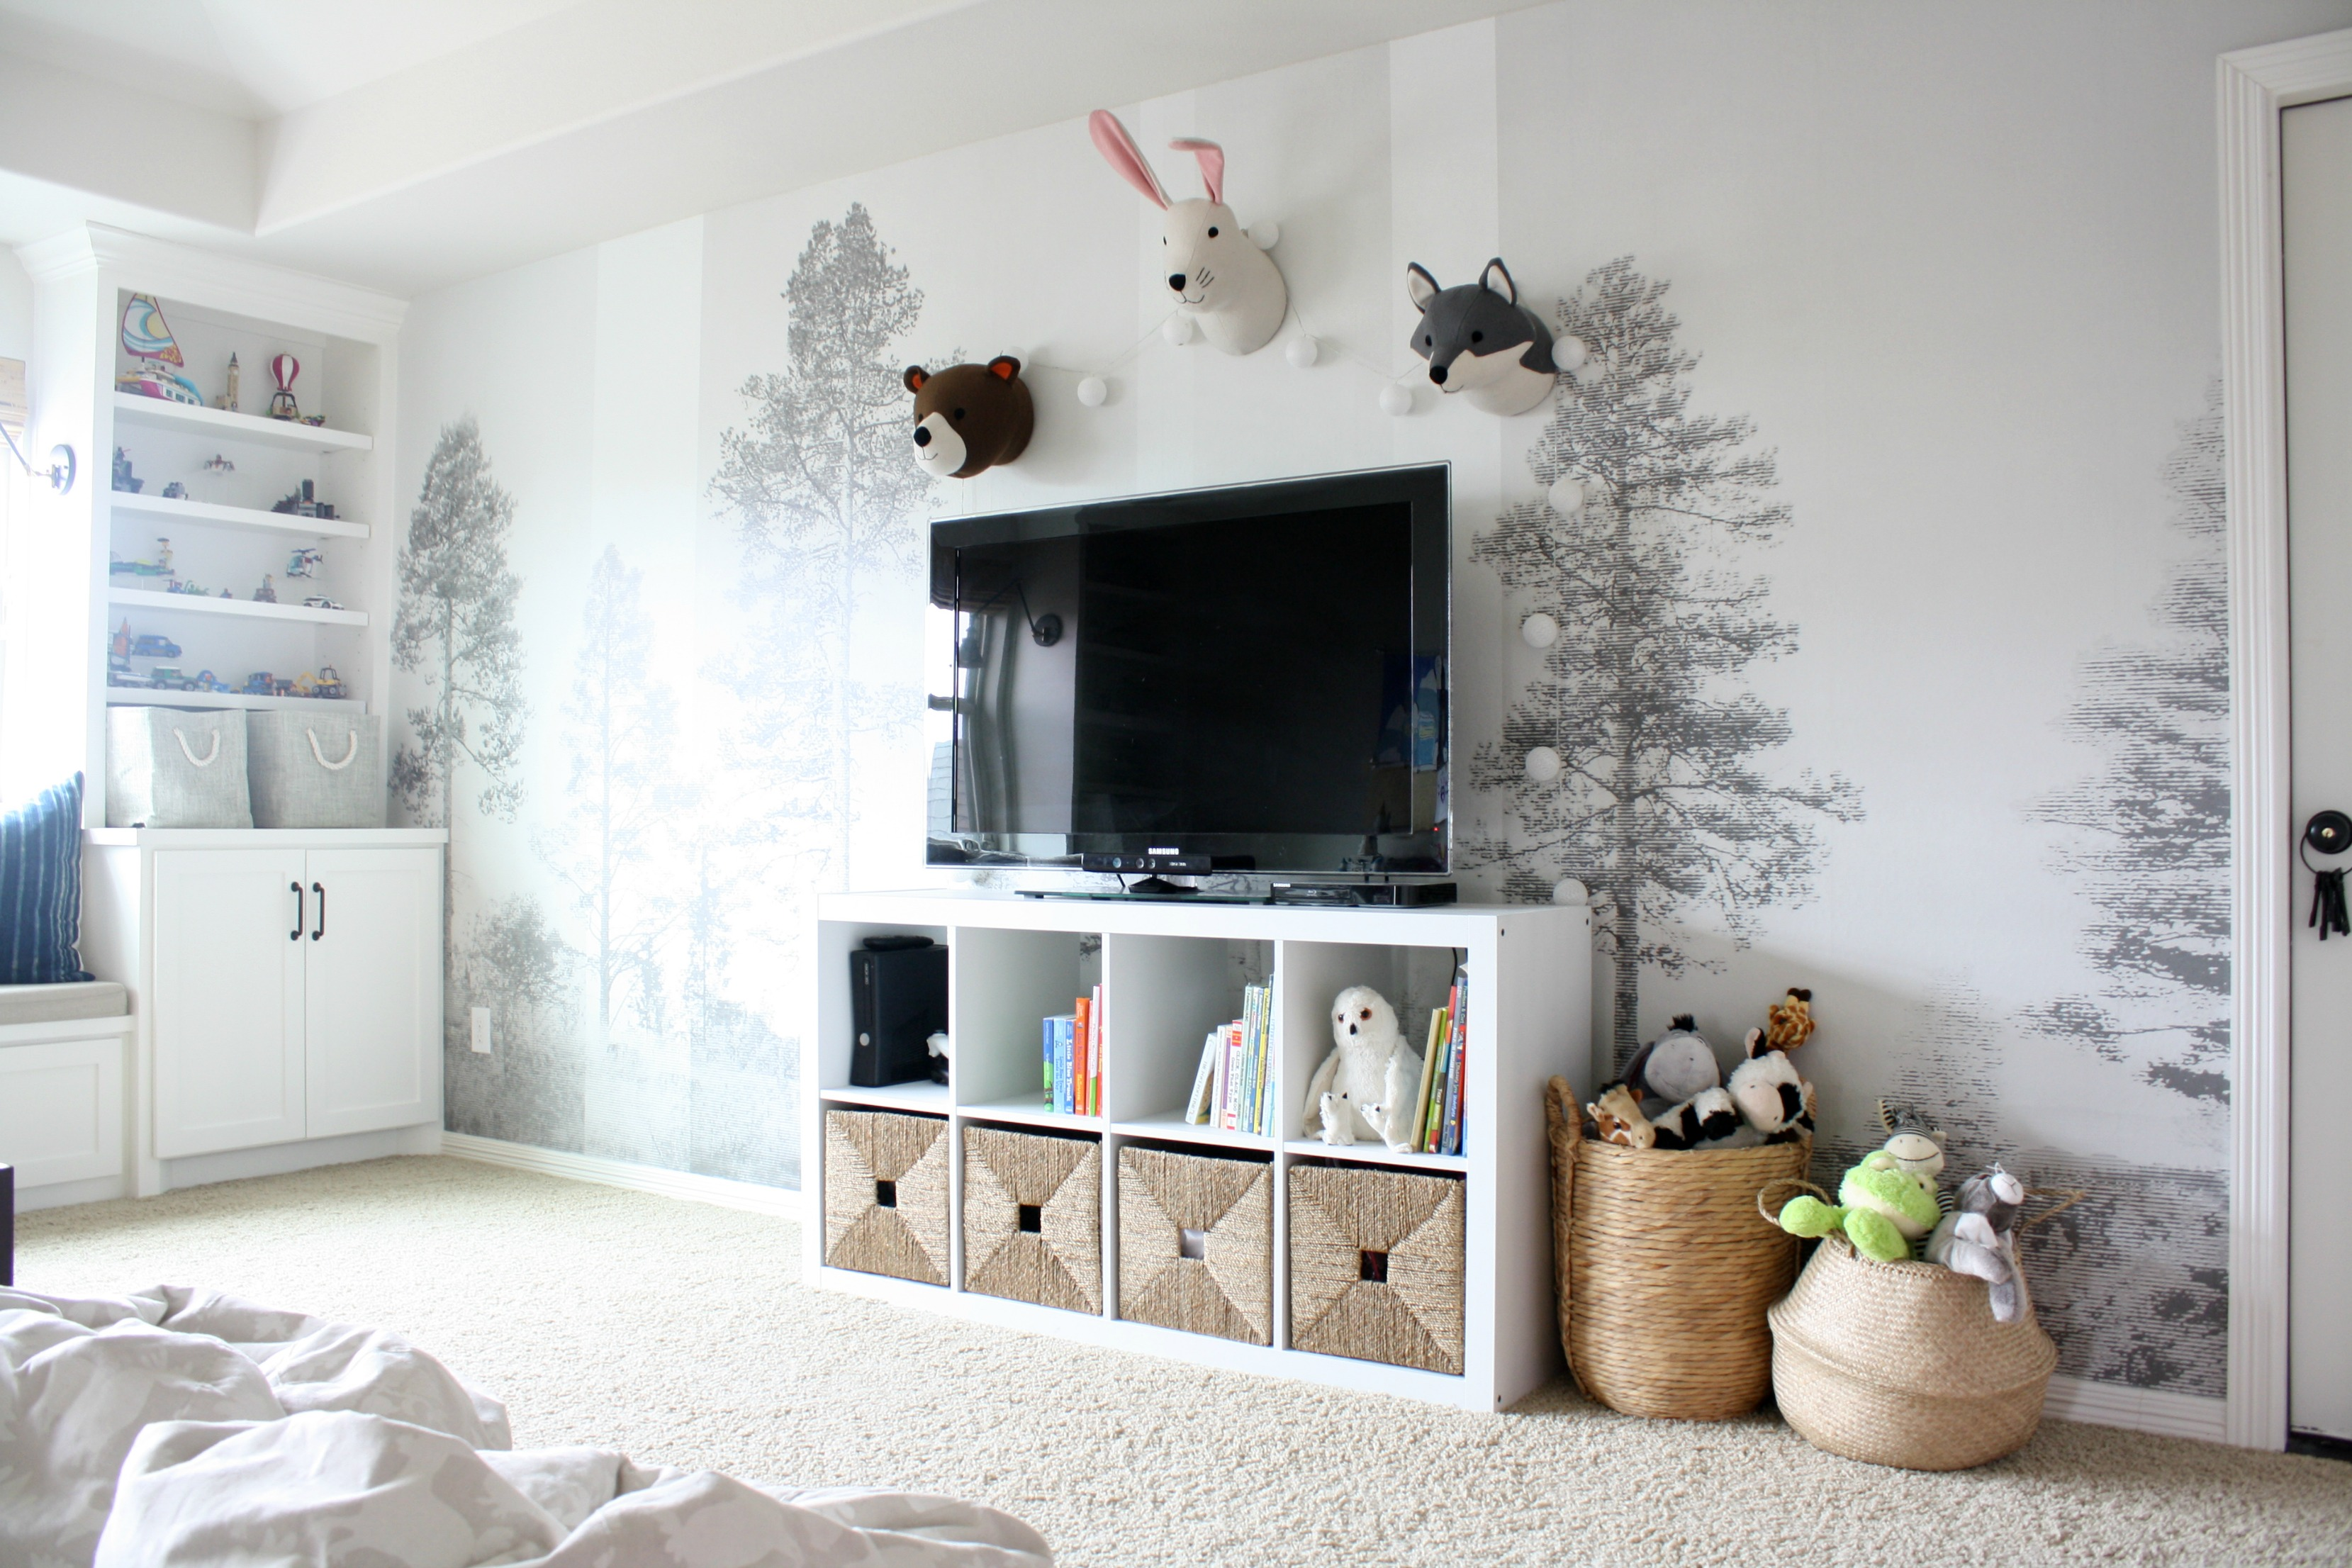 Playroom Wall Mural with Photowall - Crazy Wonderful